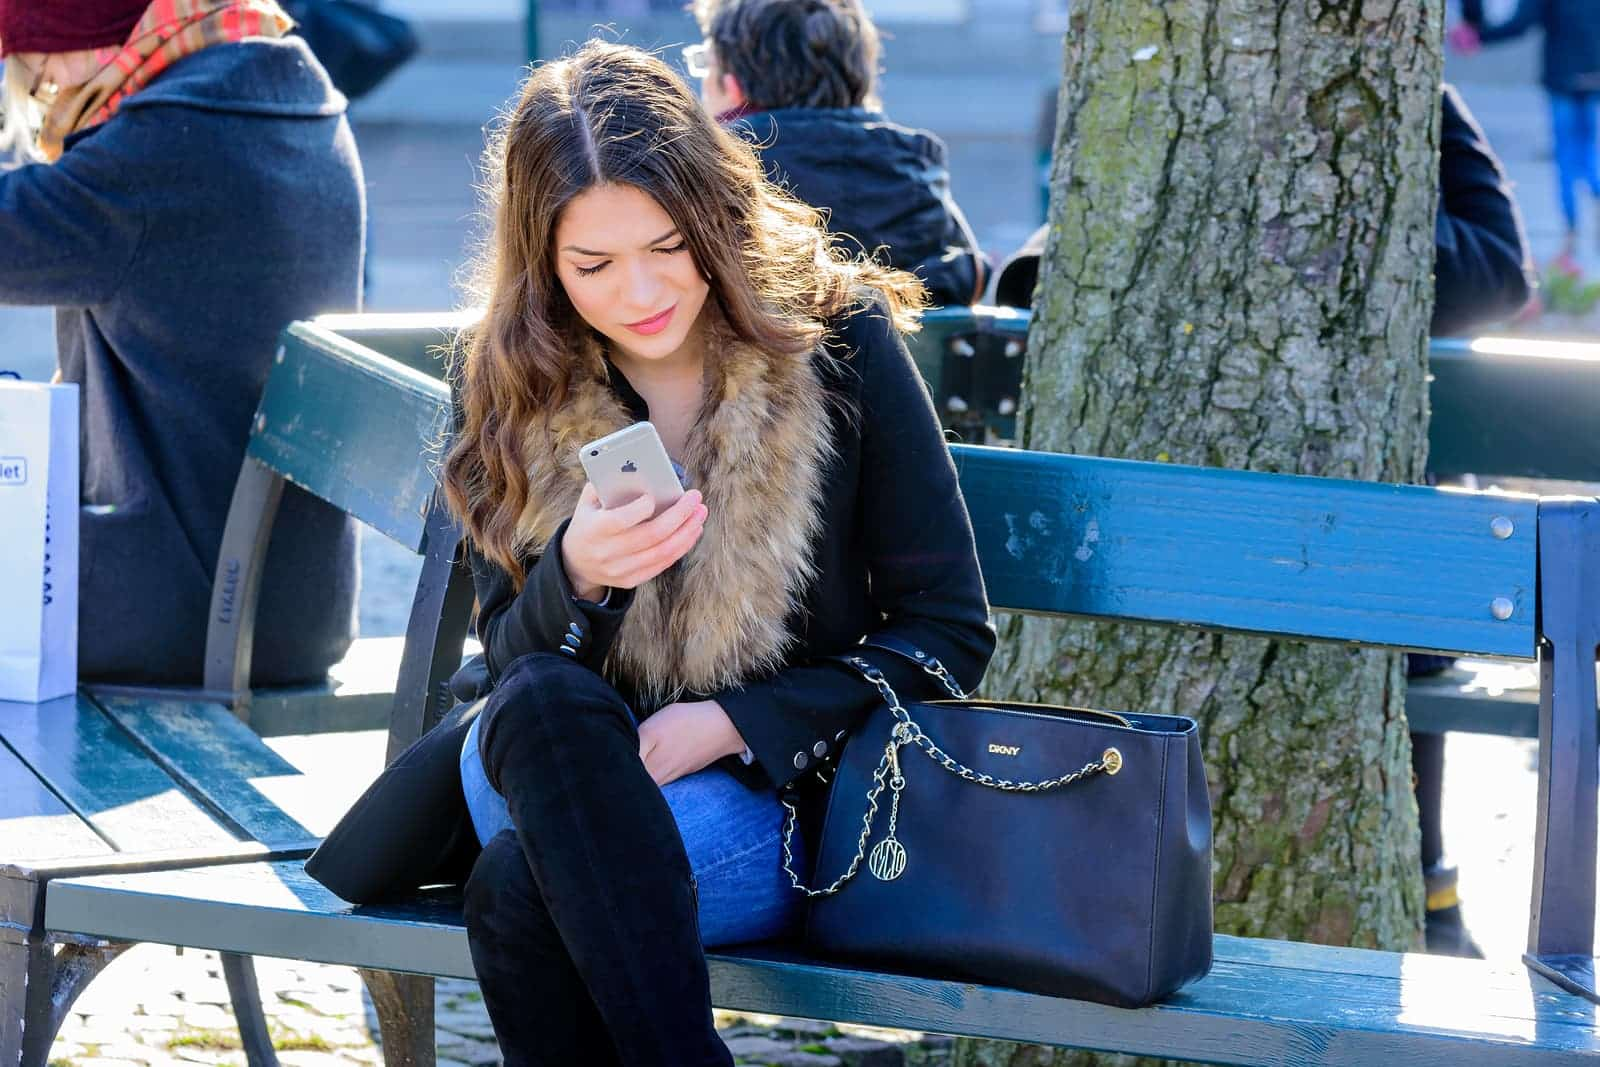 It's All About Omnichannel: In‑Store Pickup, Plus Push Notifications and theSkimm